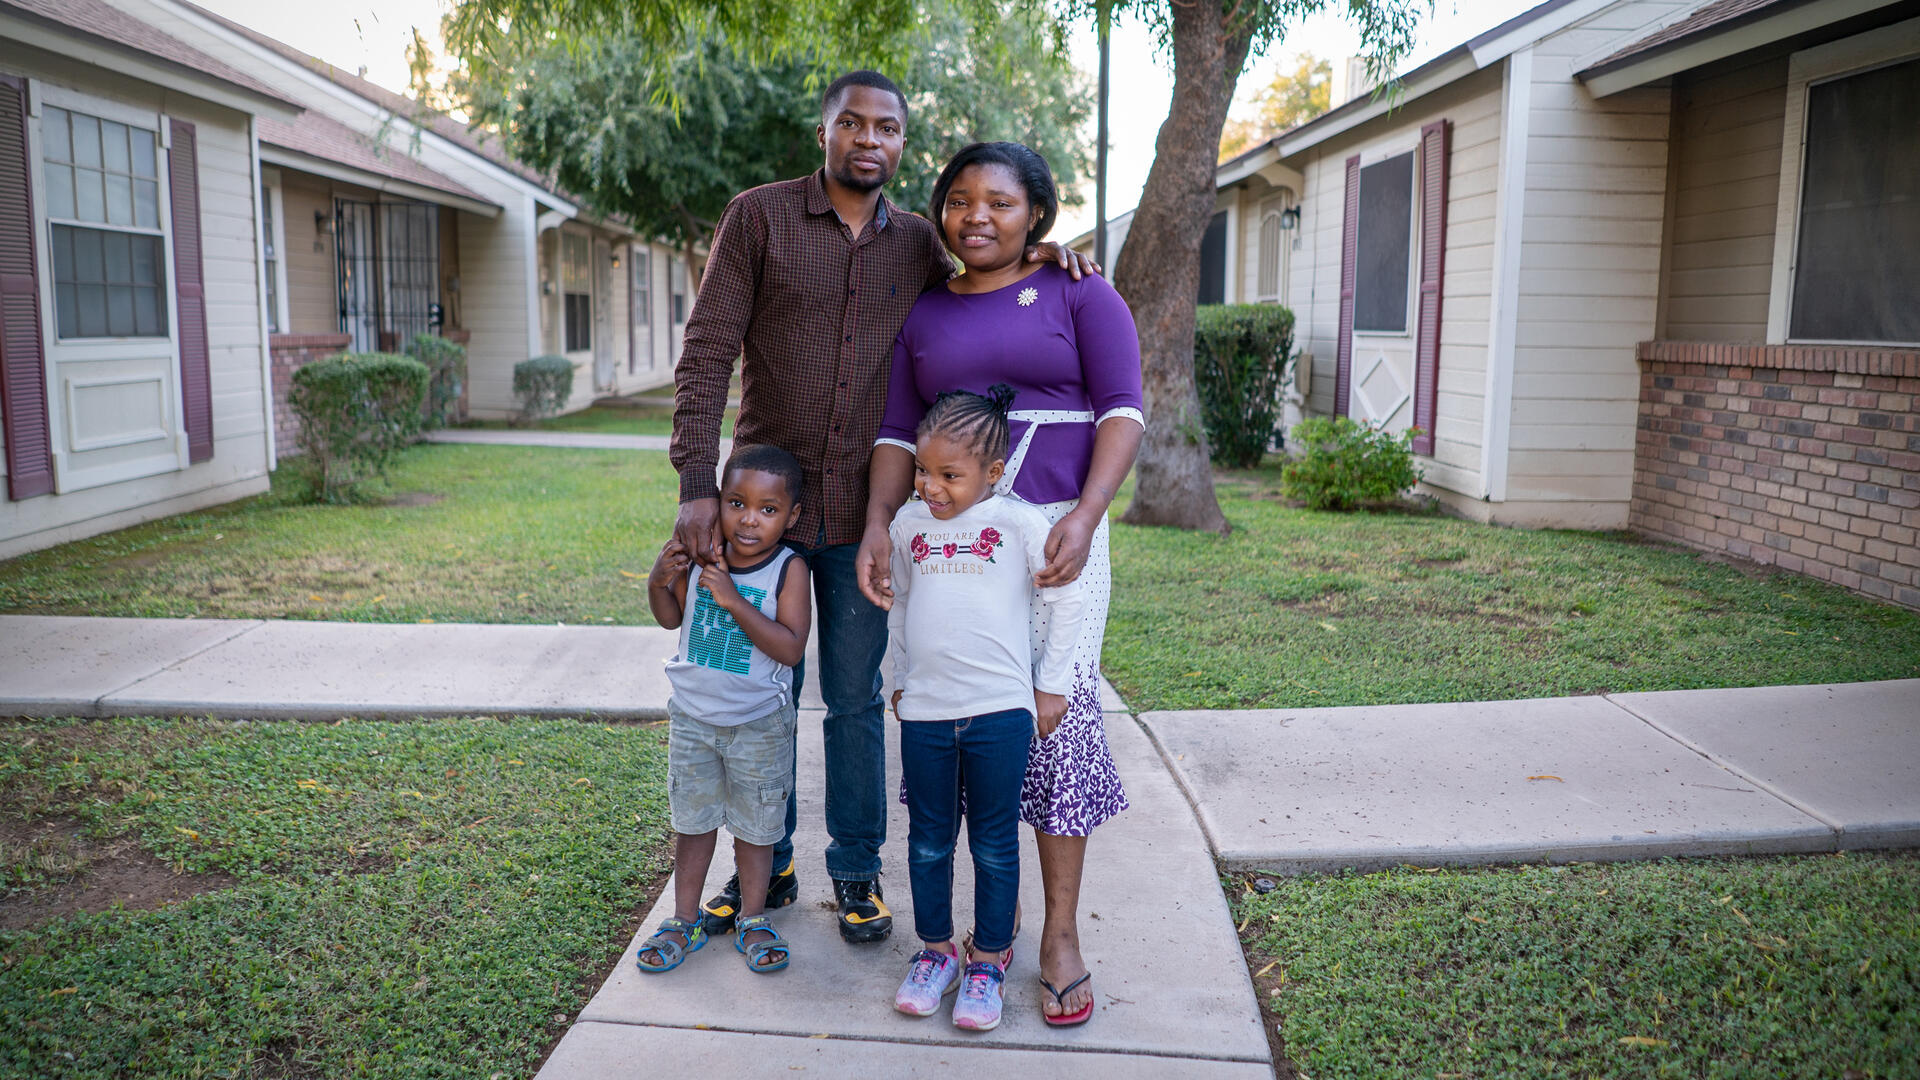 Robert, Edith and their young daughter and son stand for a photo on the sidewalk outside their home in Arizona